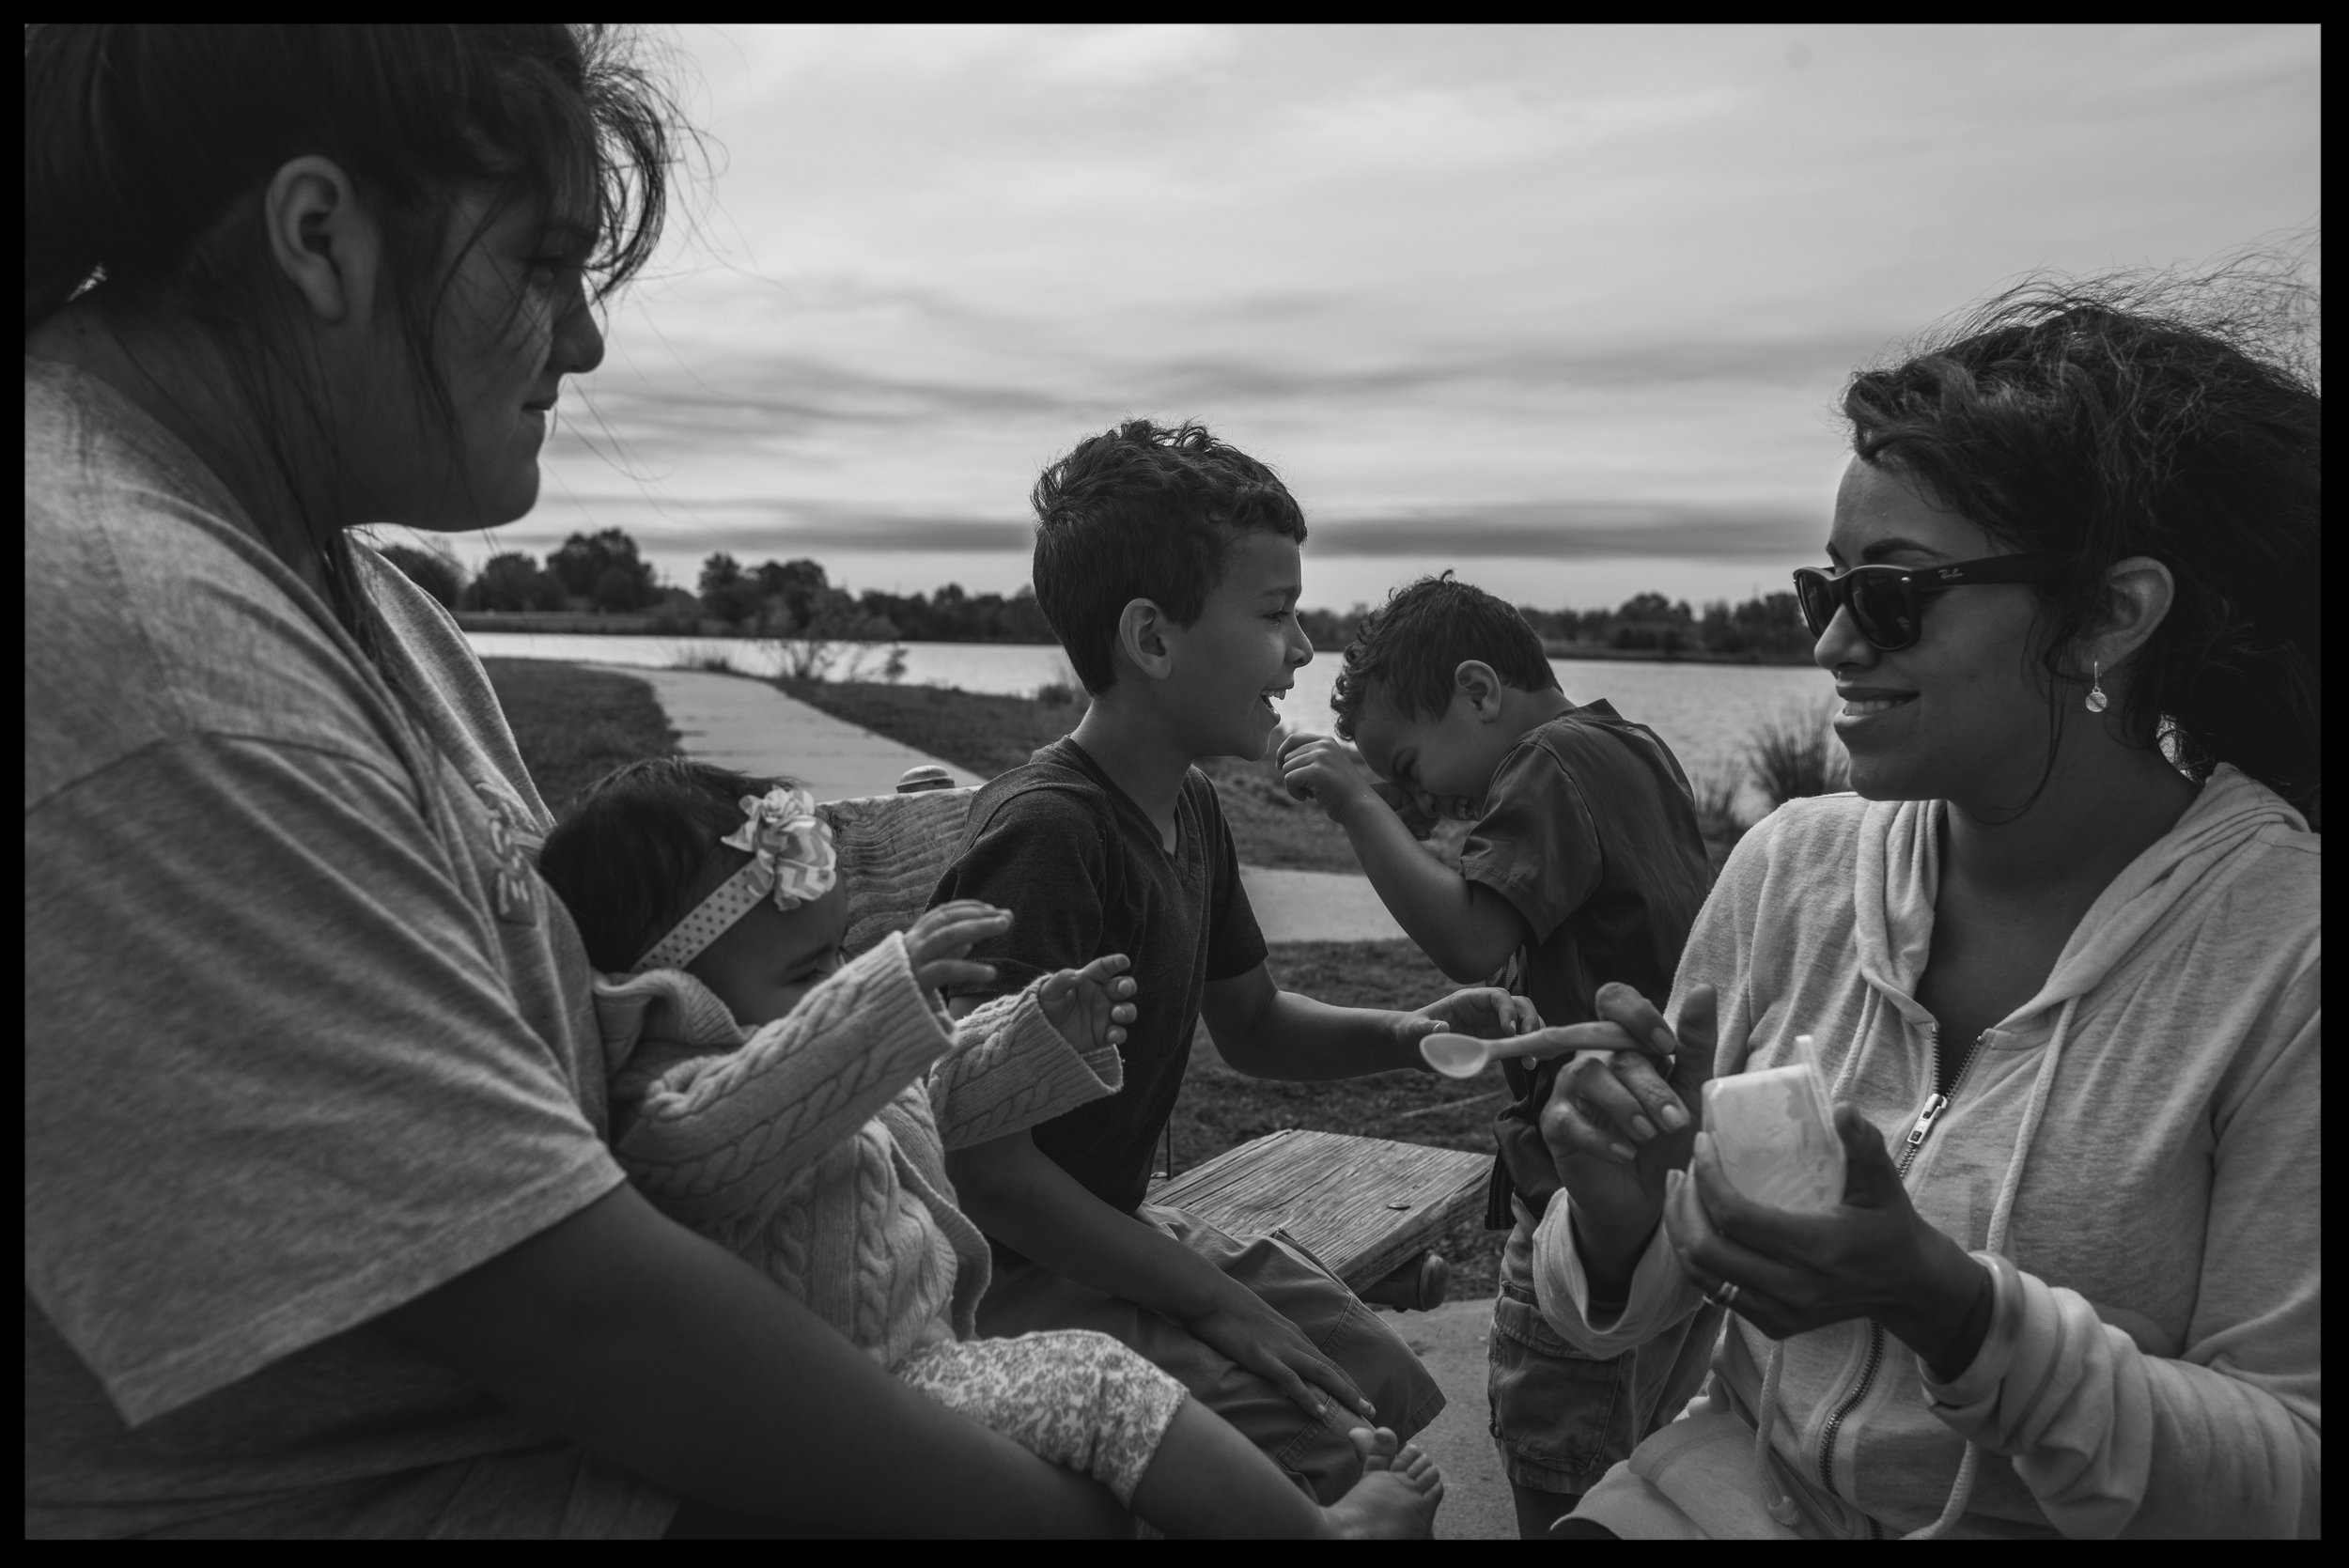 Mom, aunt, and three kids laughing together at the lake, black and white